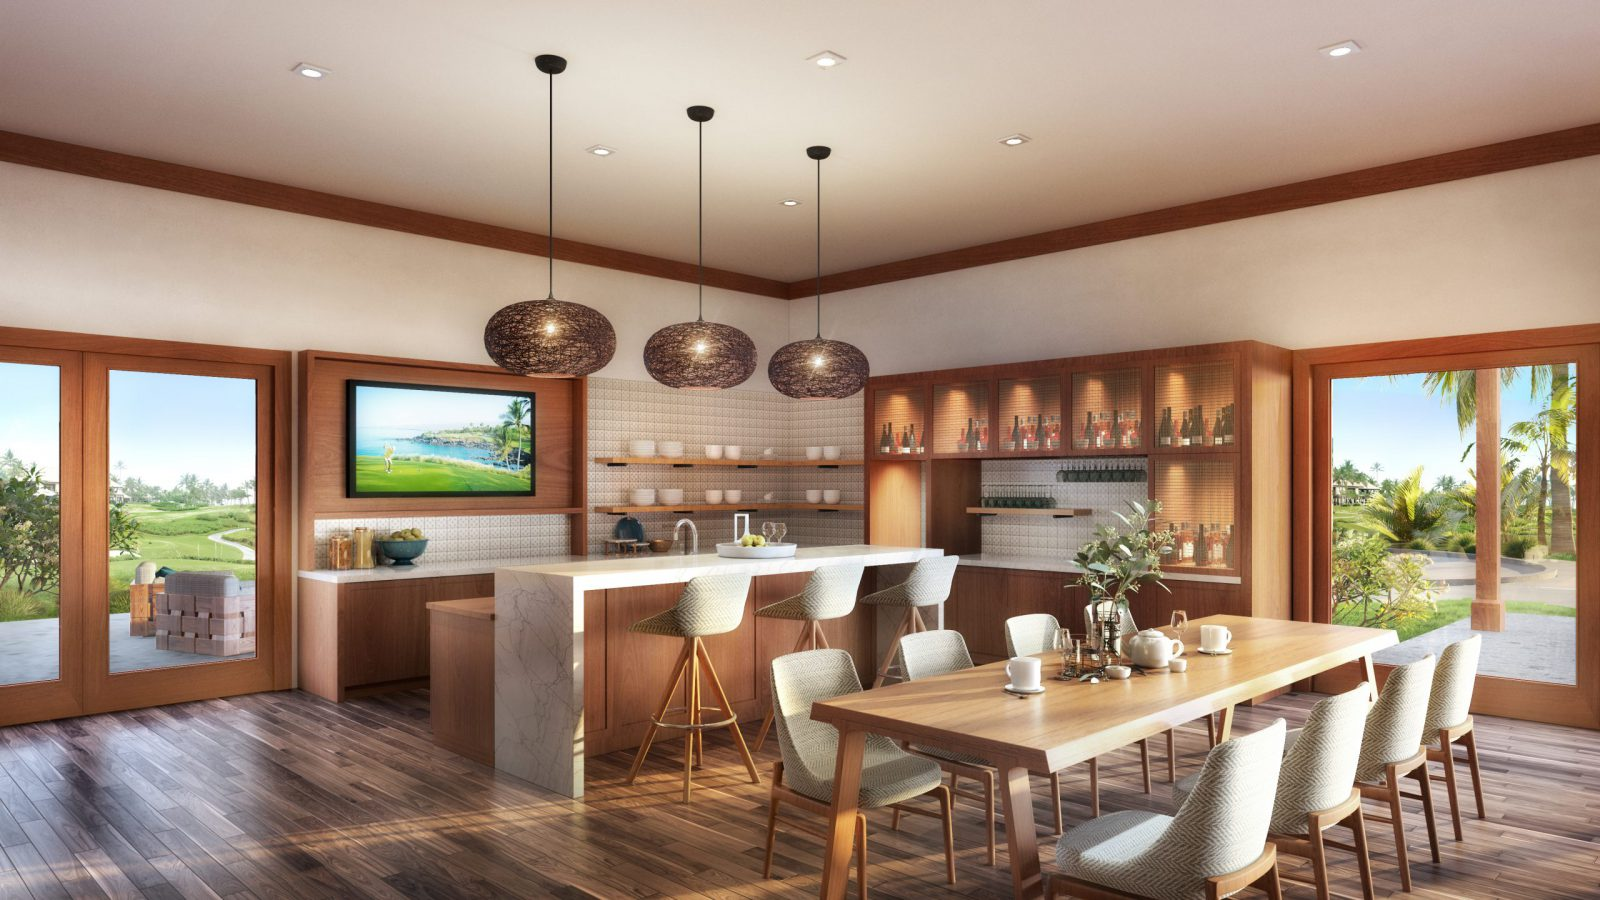 Lounge and Kitchen at golf academy looking over golf course